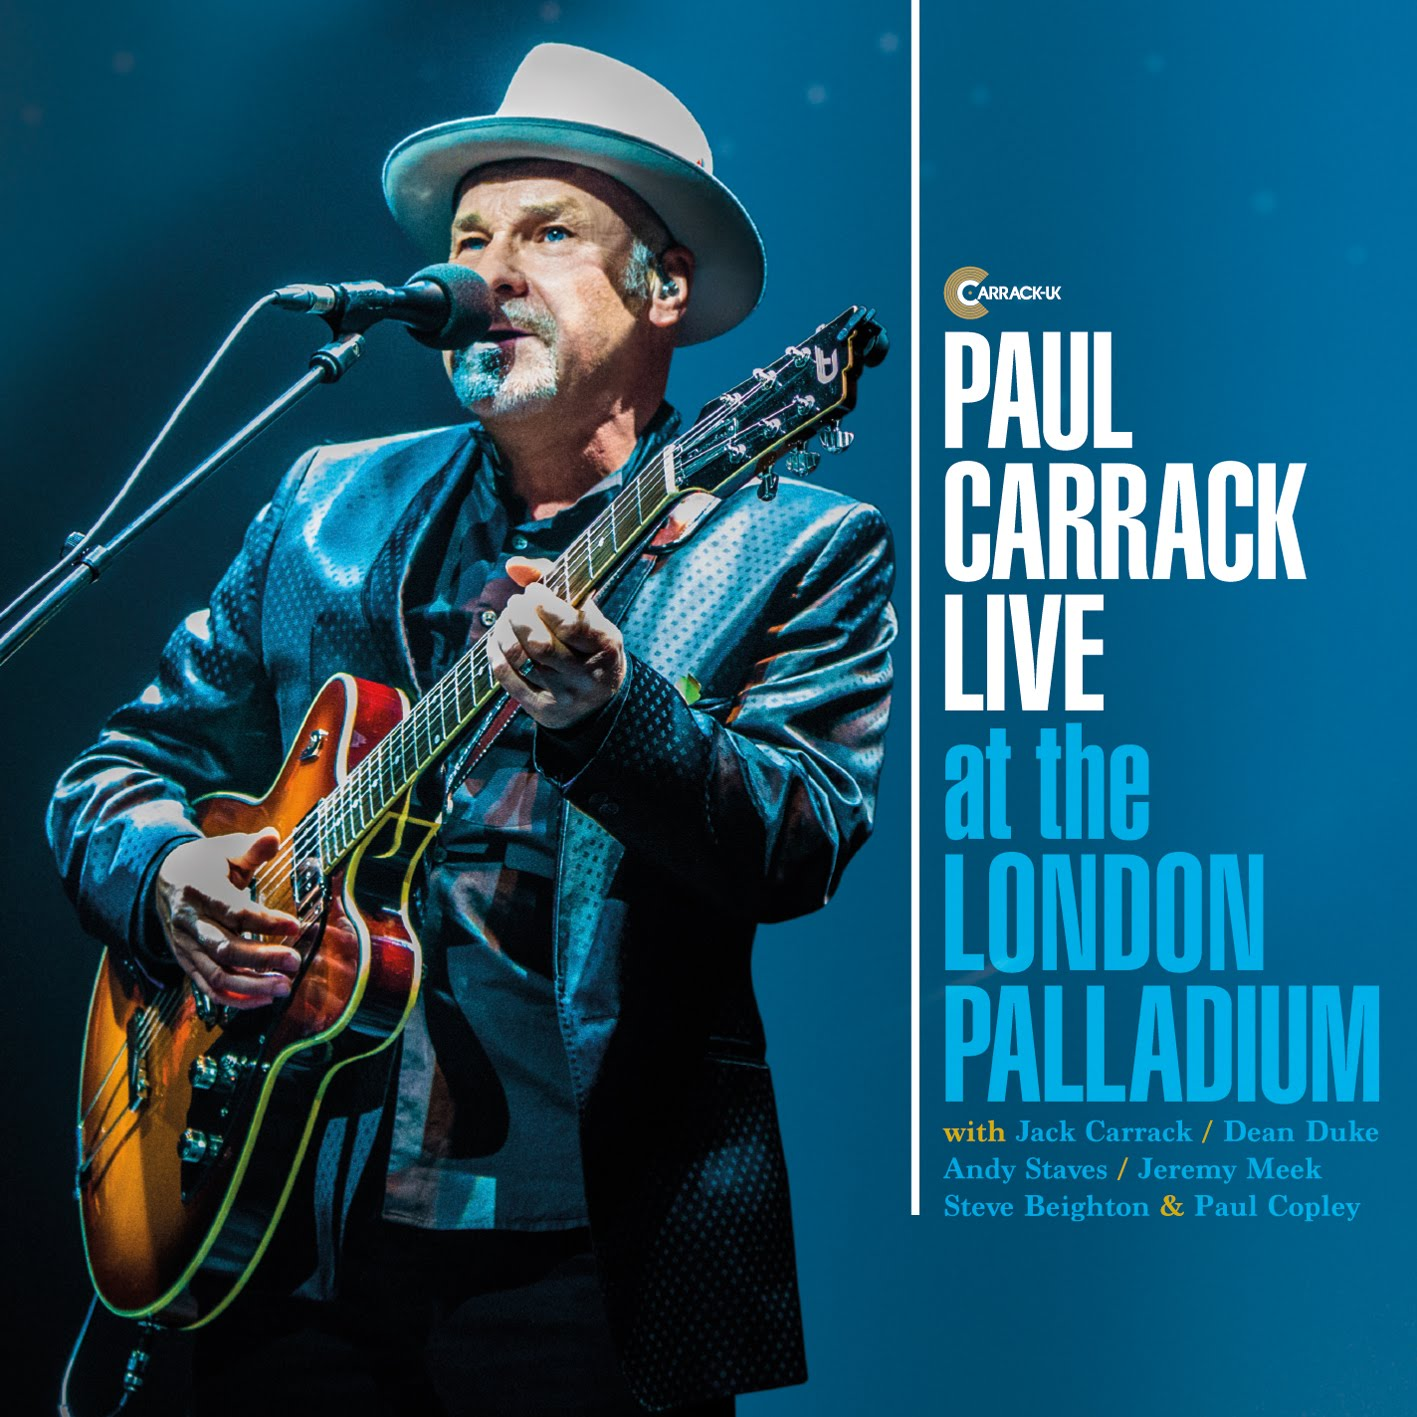 PAUL CARRACK Other Events London